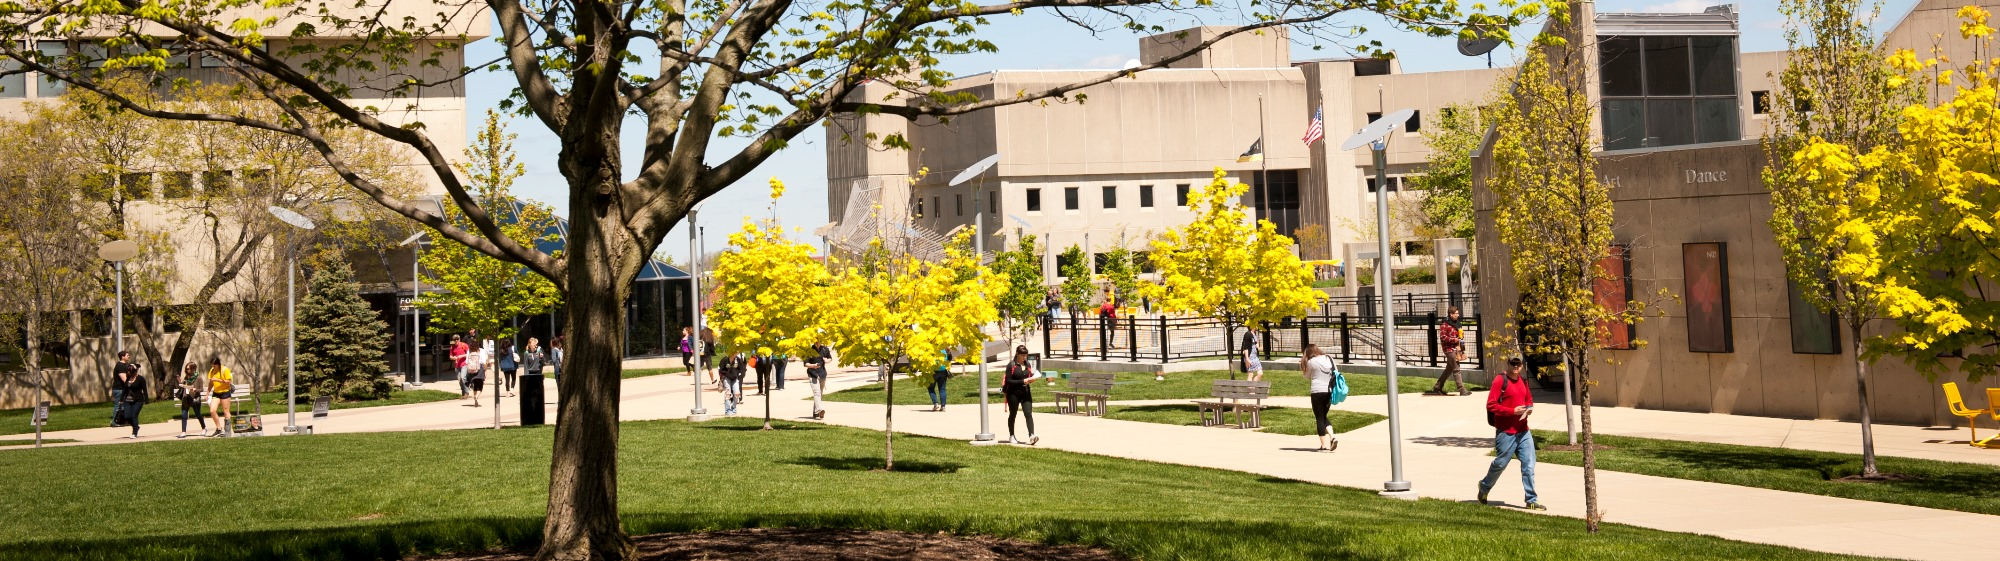 NKU students walking with campus buildings in the background.